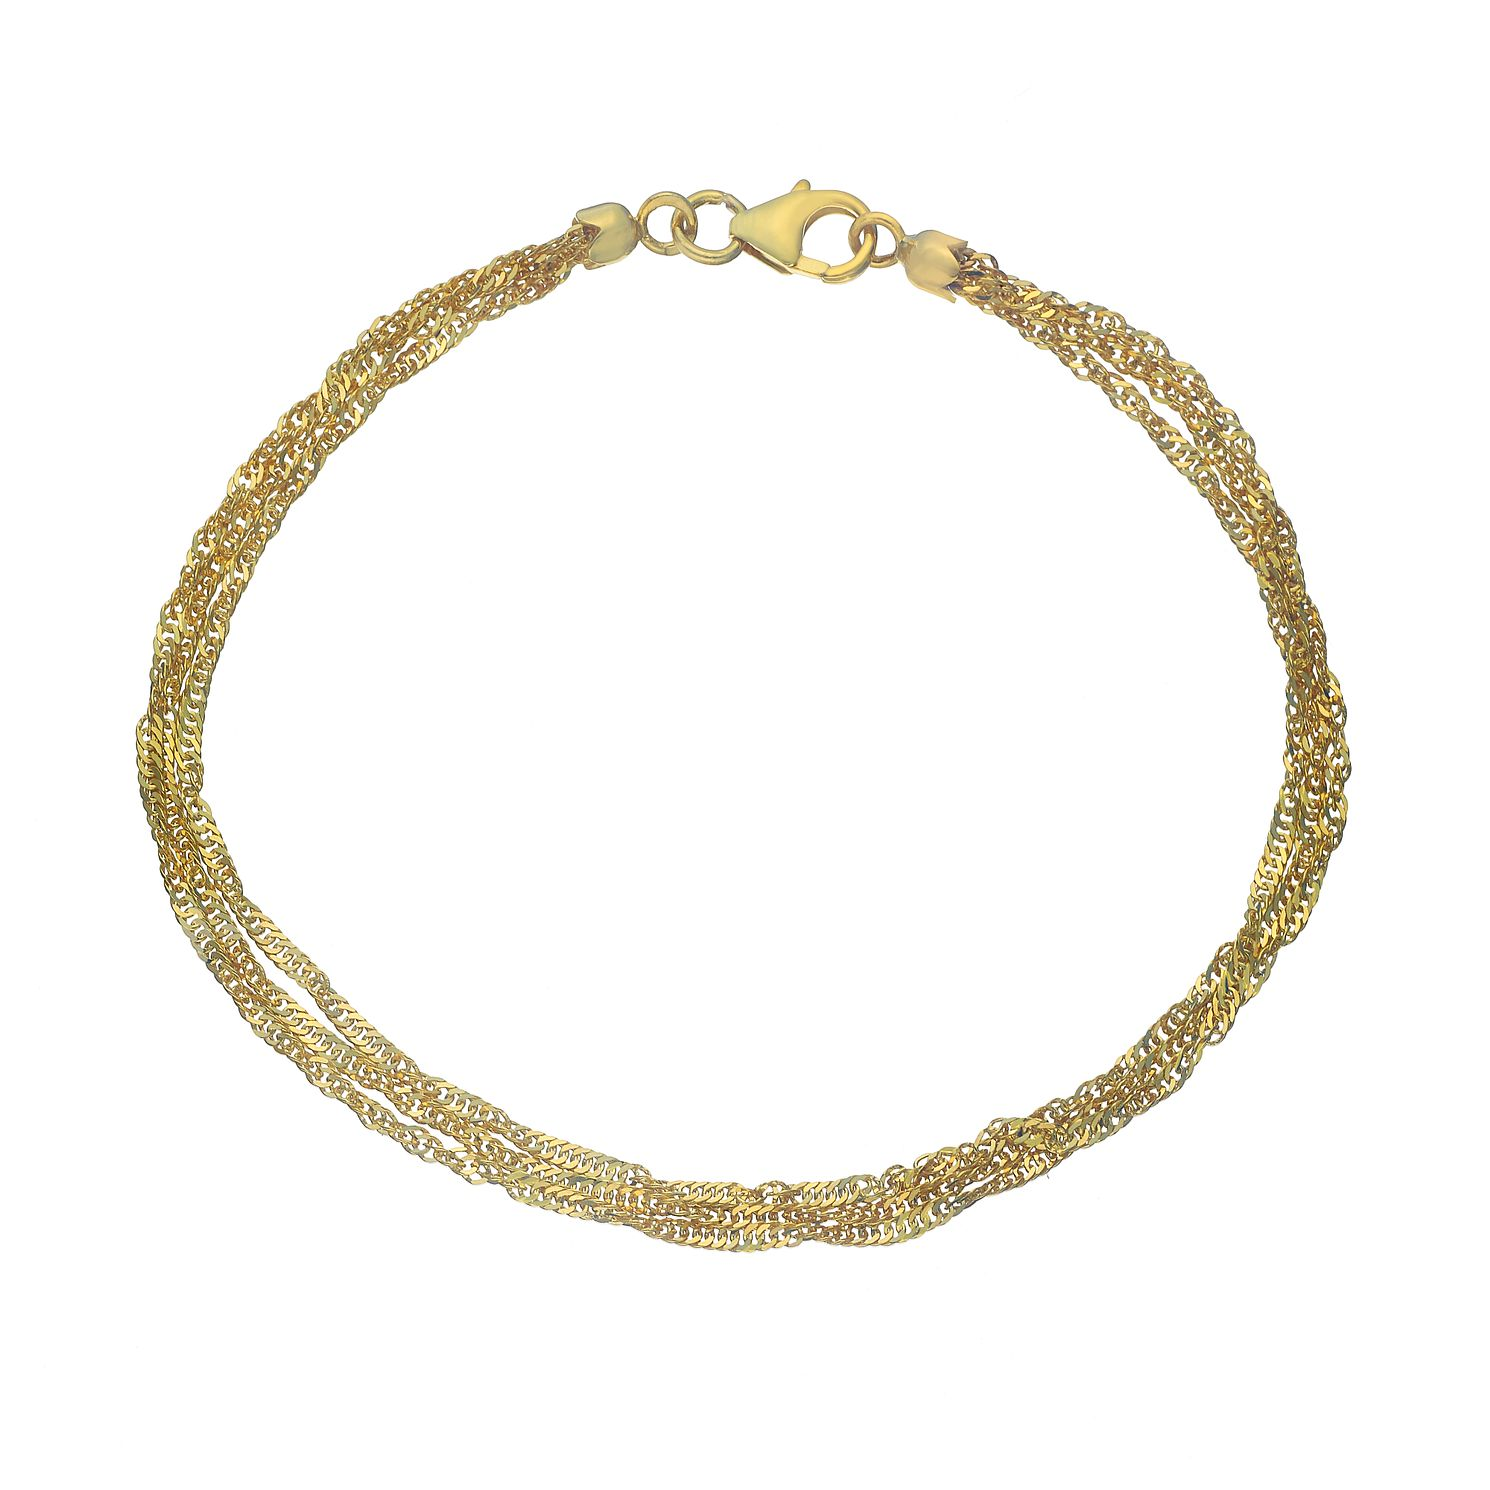 9ct Yellow Gold Three Strands Singapore Chain Bracelet - Product number 4673115